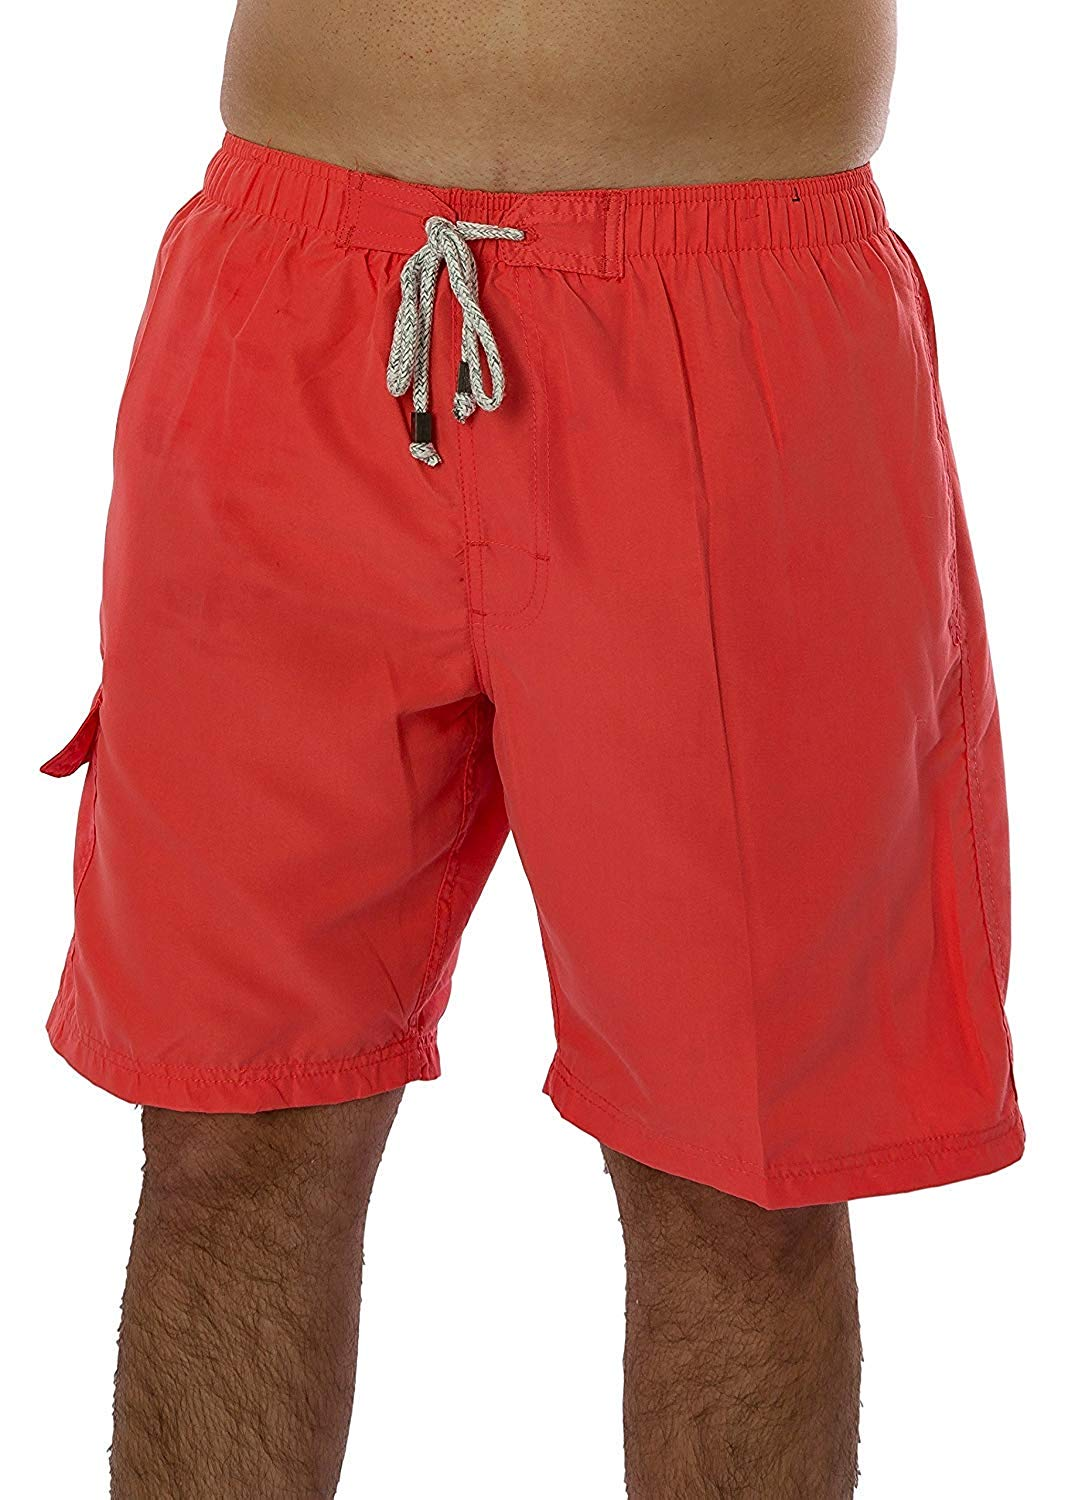 2020 10 pieces Men's Solid Dry Board Shorts Suit Surf Beach Swim Trunks2019 Cargo Pants Overalls Straight